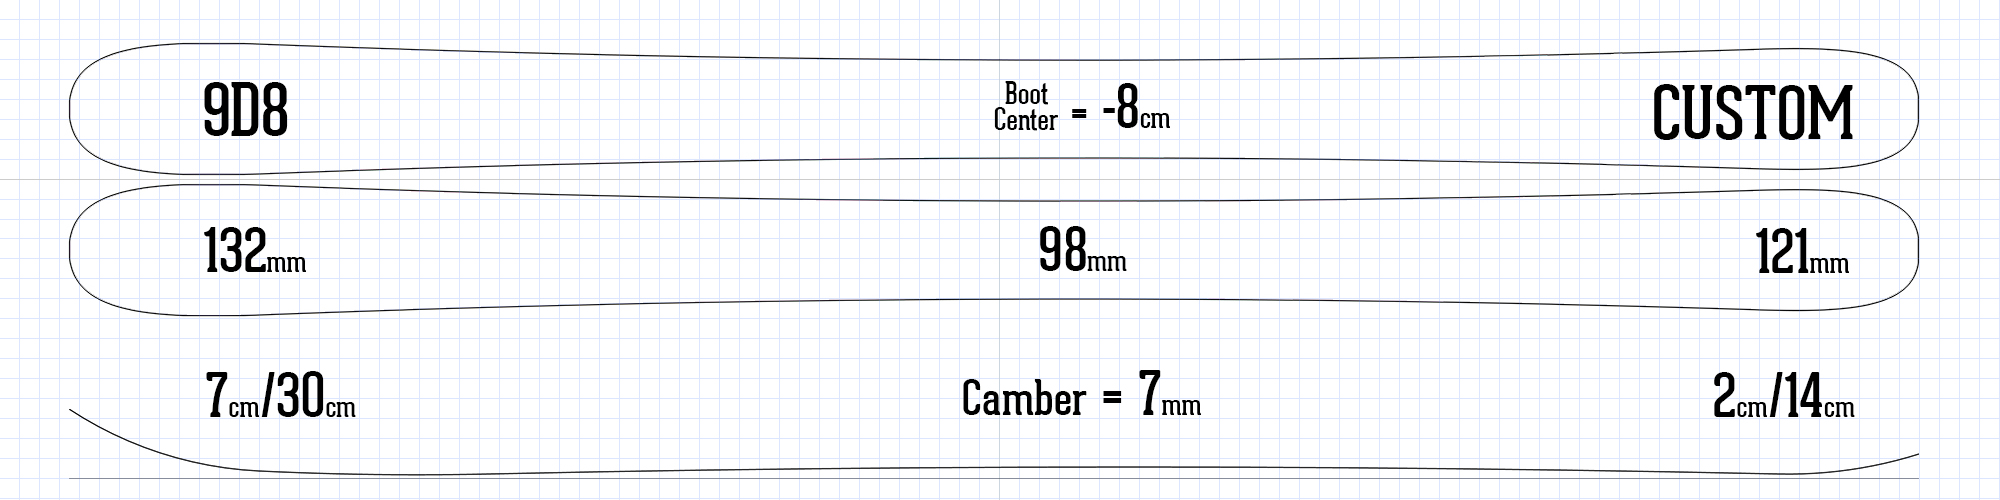 9D8 ski information sheet specs rocker camber profile